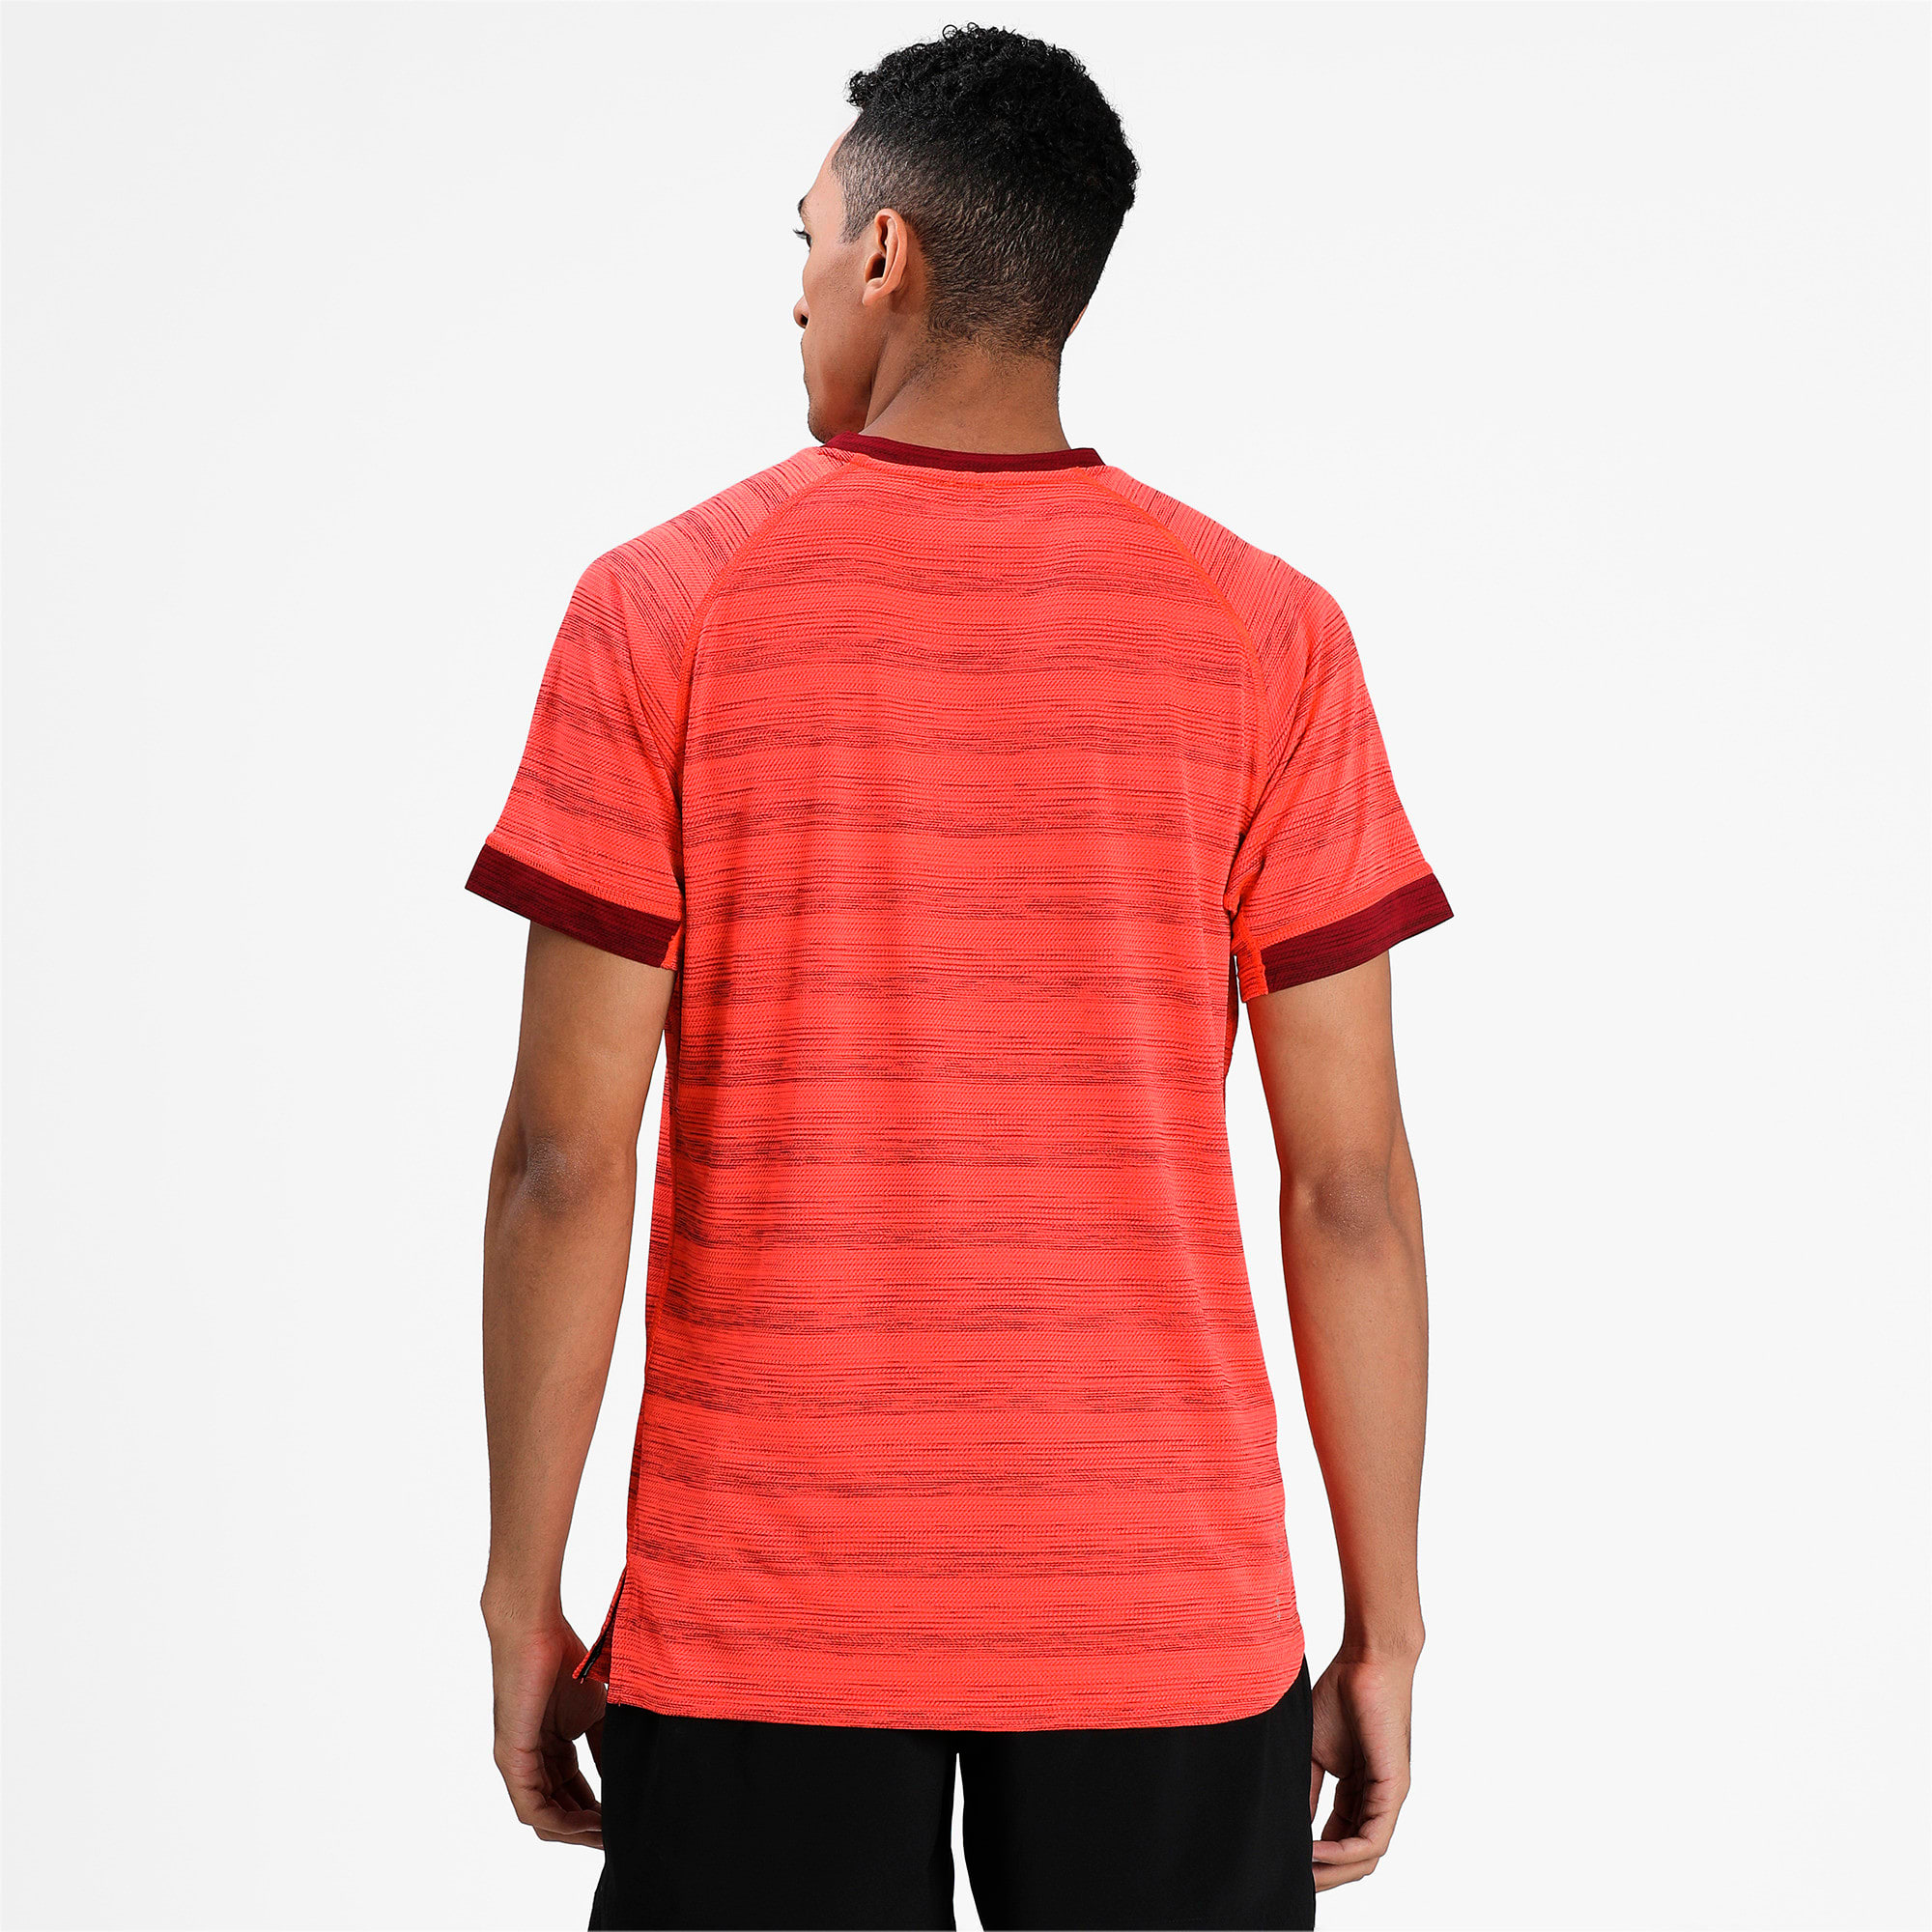 Thumbnail 2 of Get Fast THERMO R+ Men's Running Tee, Nrgy Red Htr-Rhubarb Htr, medium-IND